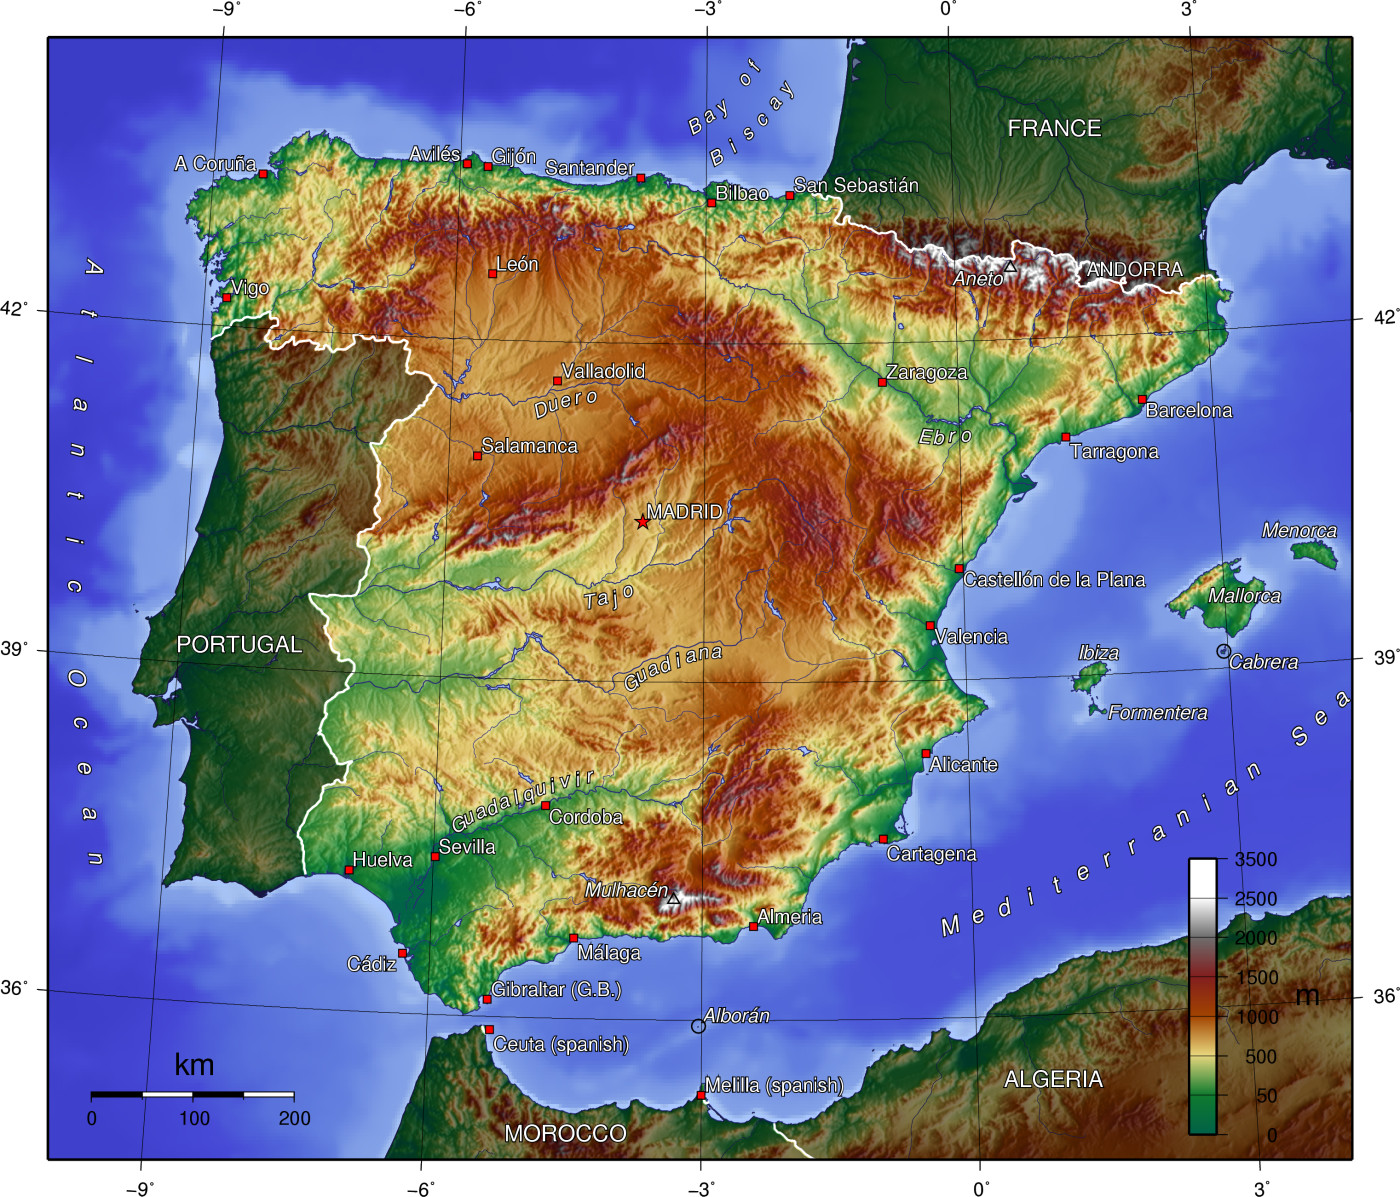 Spain topography 2005